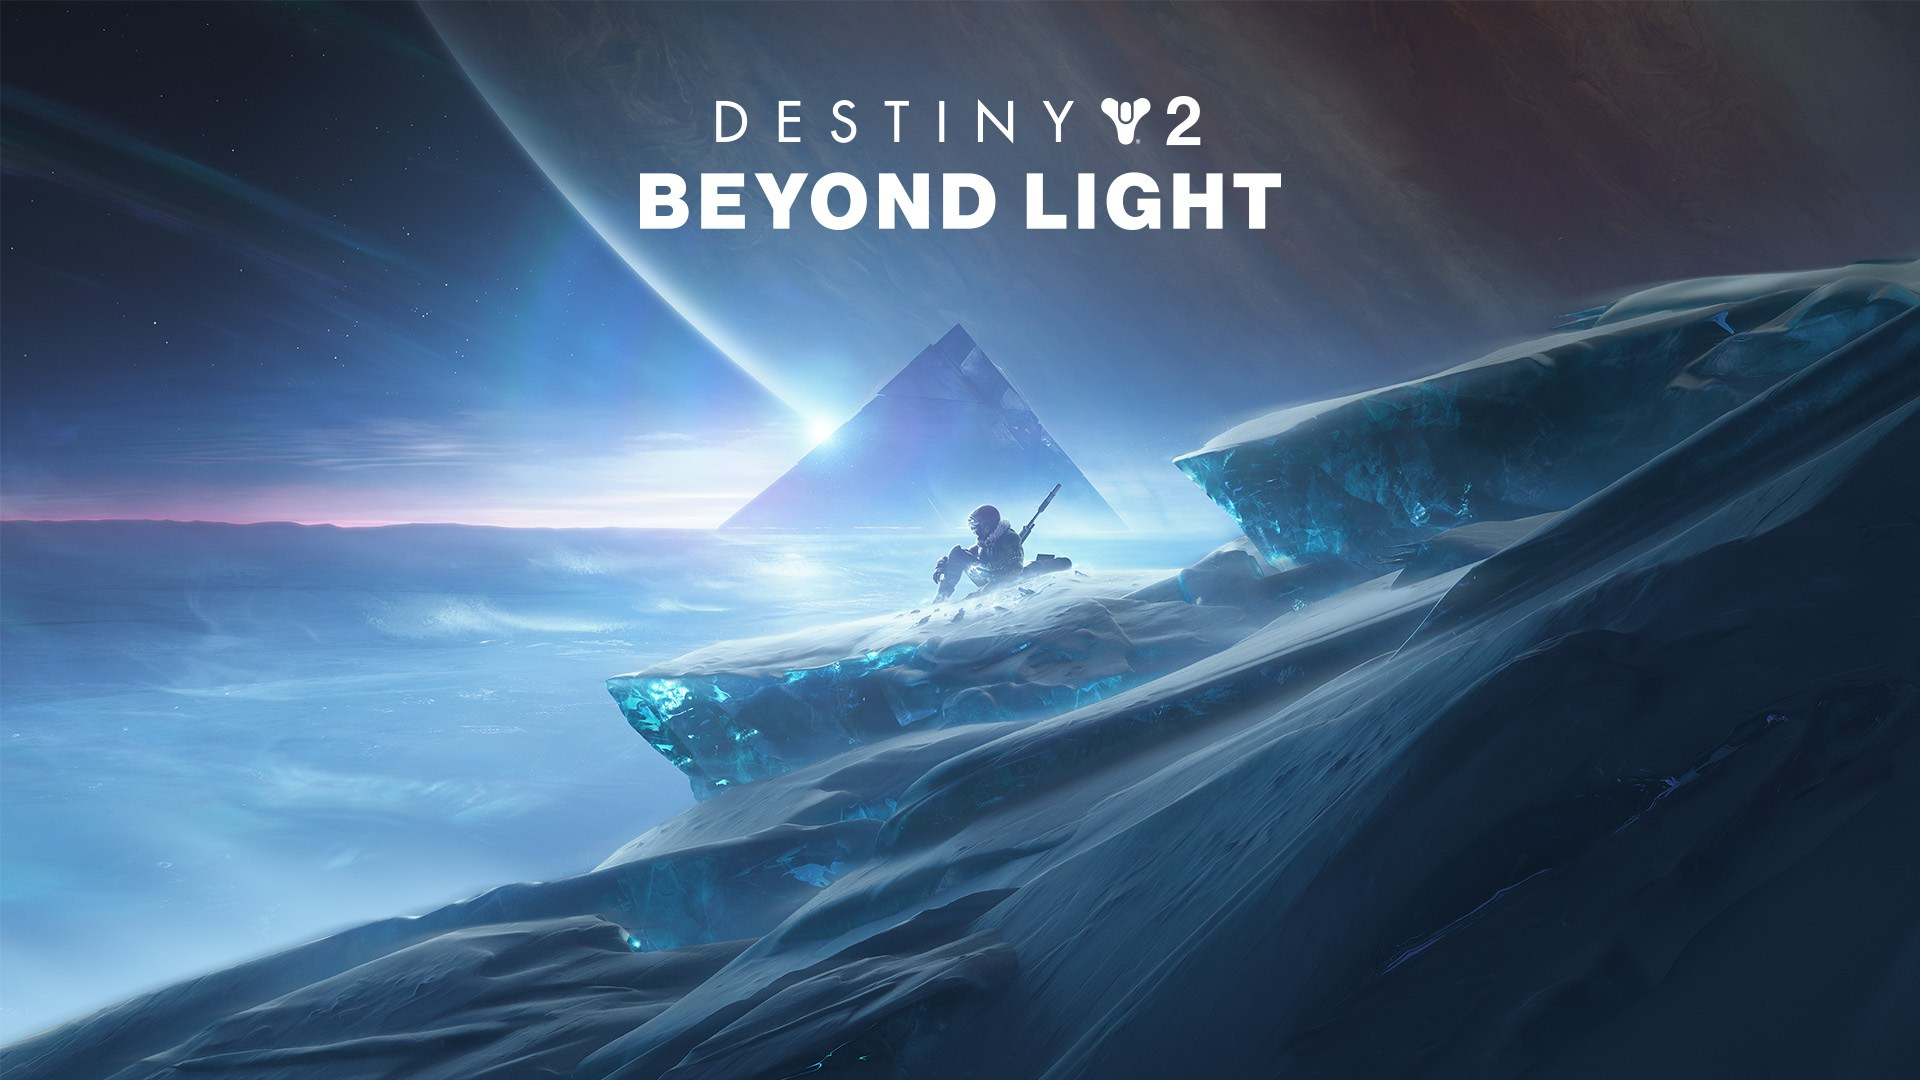 The Next Chapters of Destiny 2 Has Been Revealed